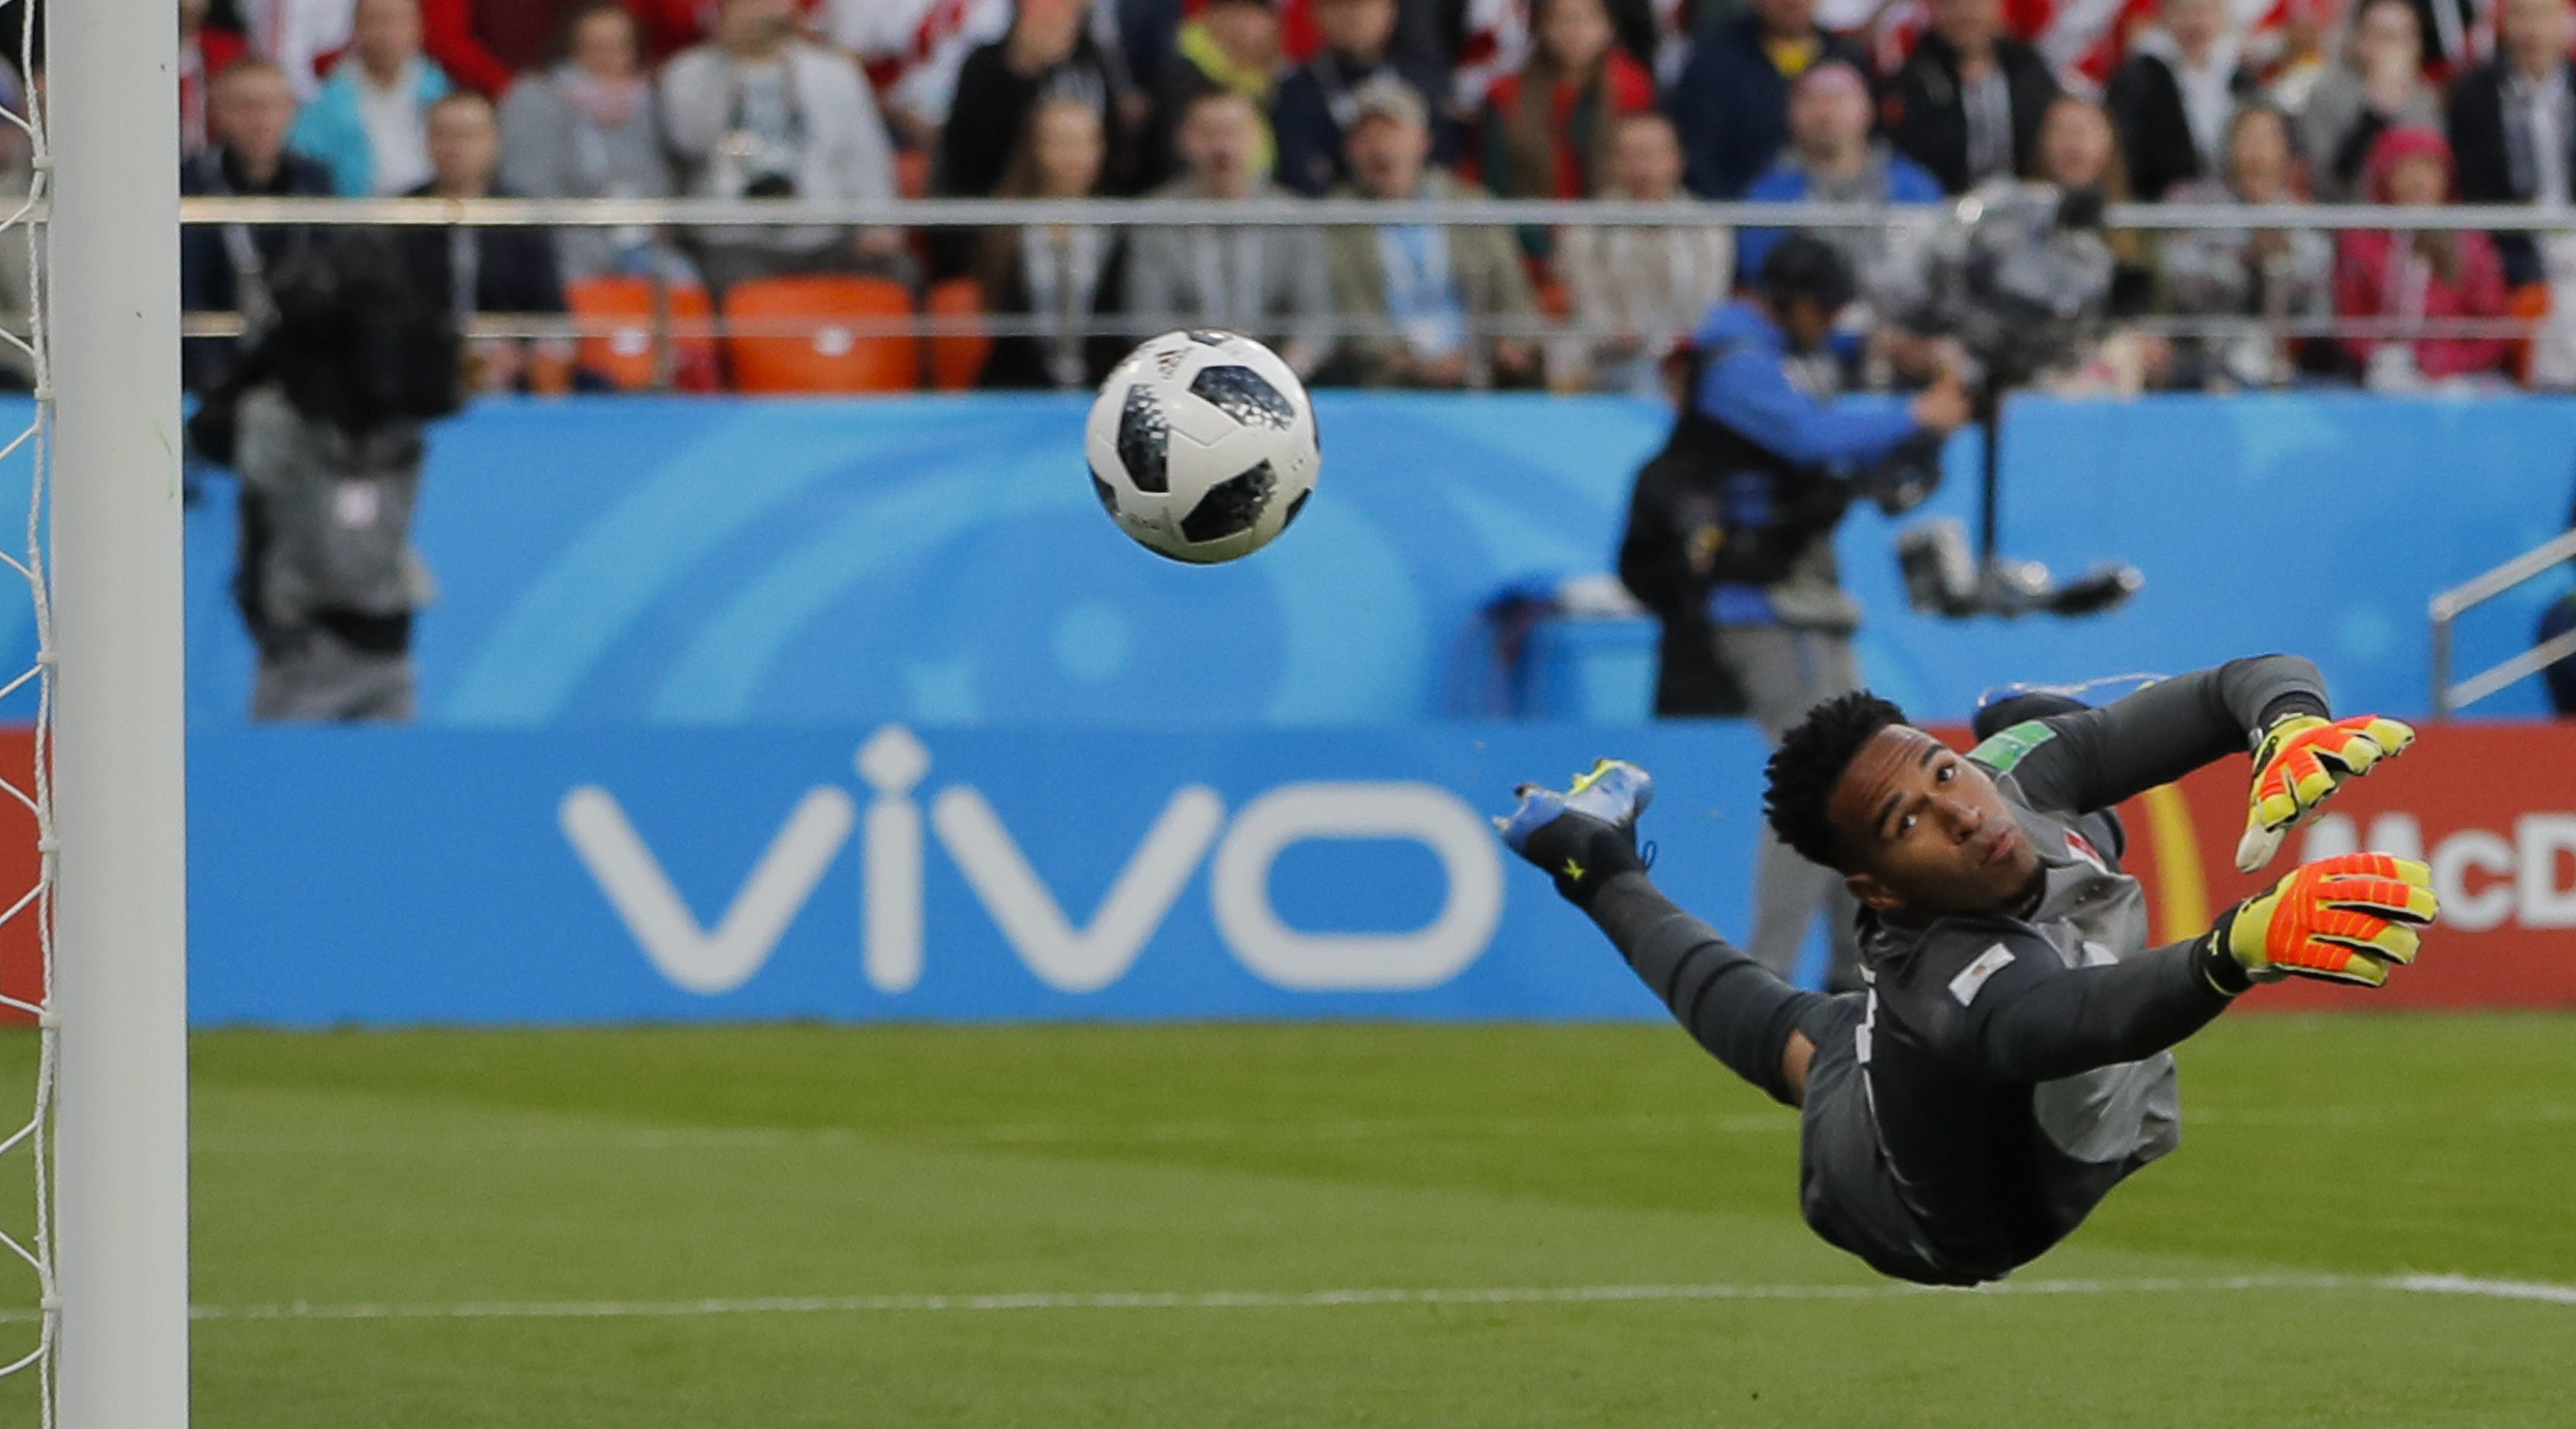 <div class='meta'><div class='origin-logo' data-origin='none'></div><span class='caption-text' data-credit='Vadim Ghirda/AP Photo'>Peru goalkeeper Pedro Gallese dives for a save during the group C match between France and Peru n the Yekaterinburg Arena in Yekaterinburg, Russia, Thursday, June 21, 2018.</span></div>